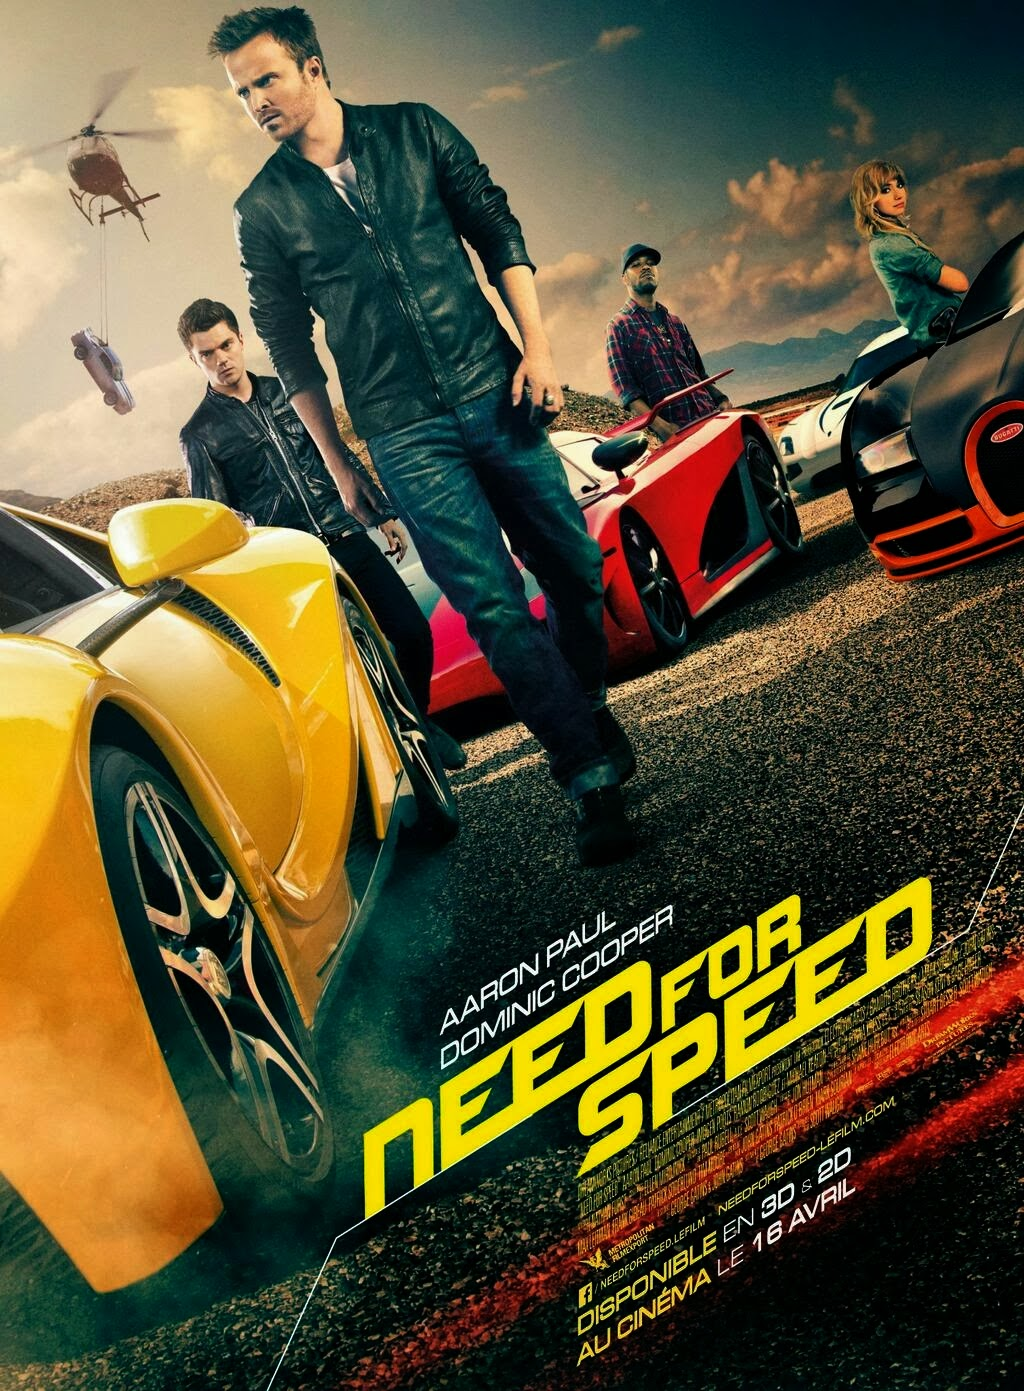 Need For Speed: La Pelicula 2014 [DvDRipAudioLatino][Acci�n]